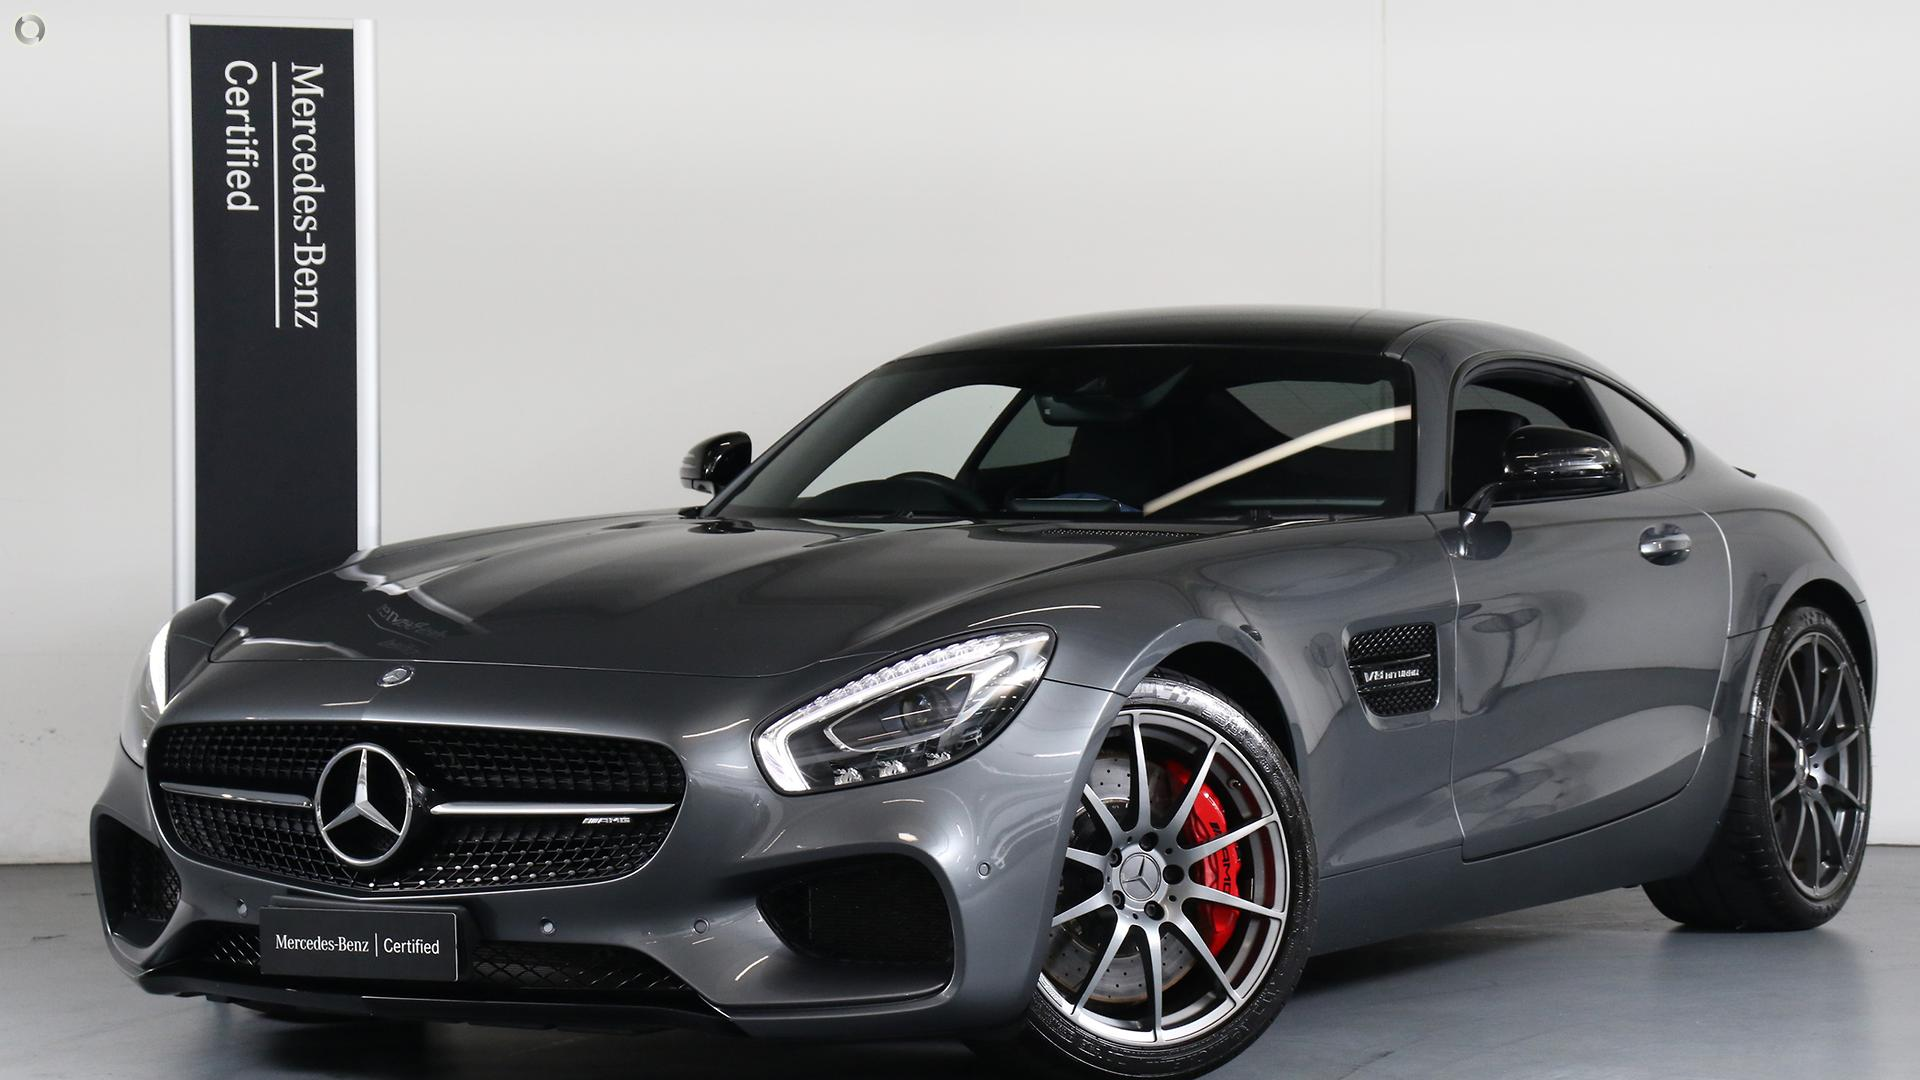 2016 Mercedes-Benz AMG GT Coupe